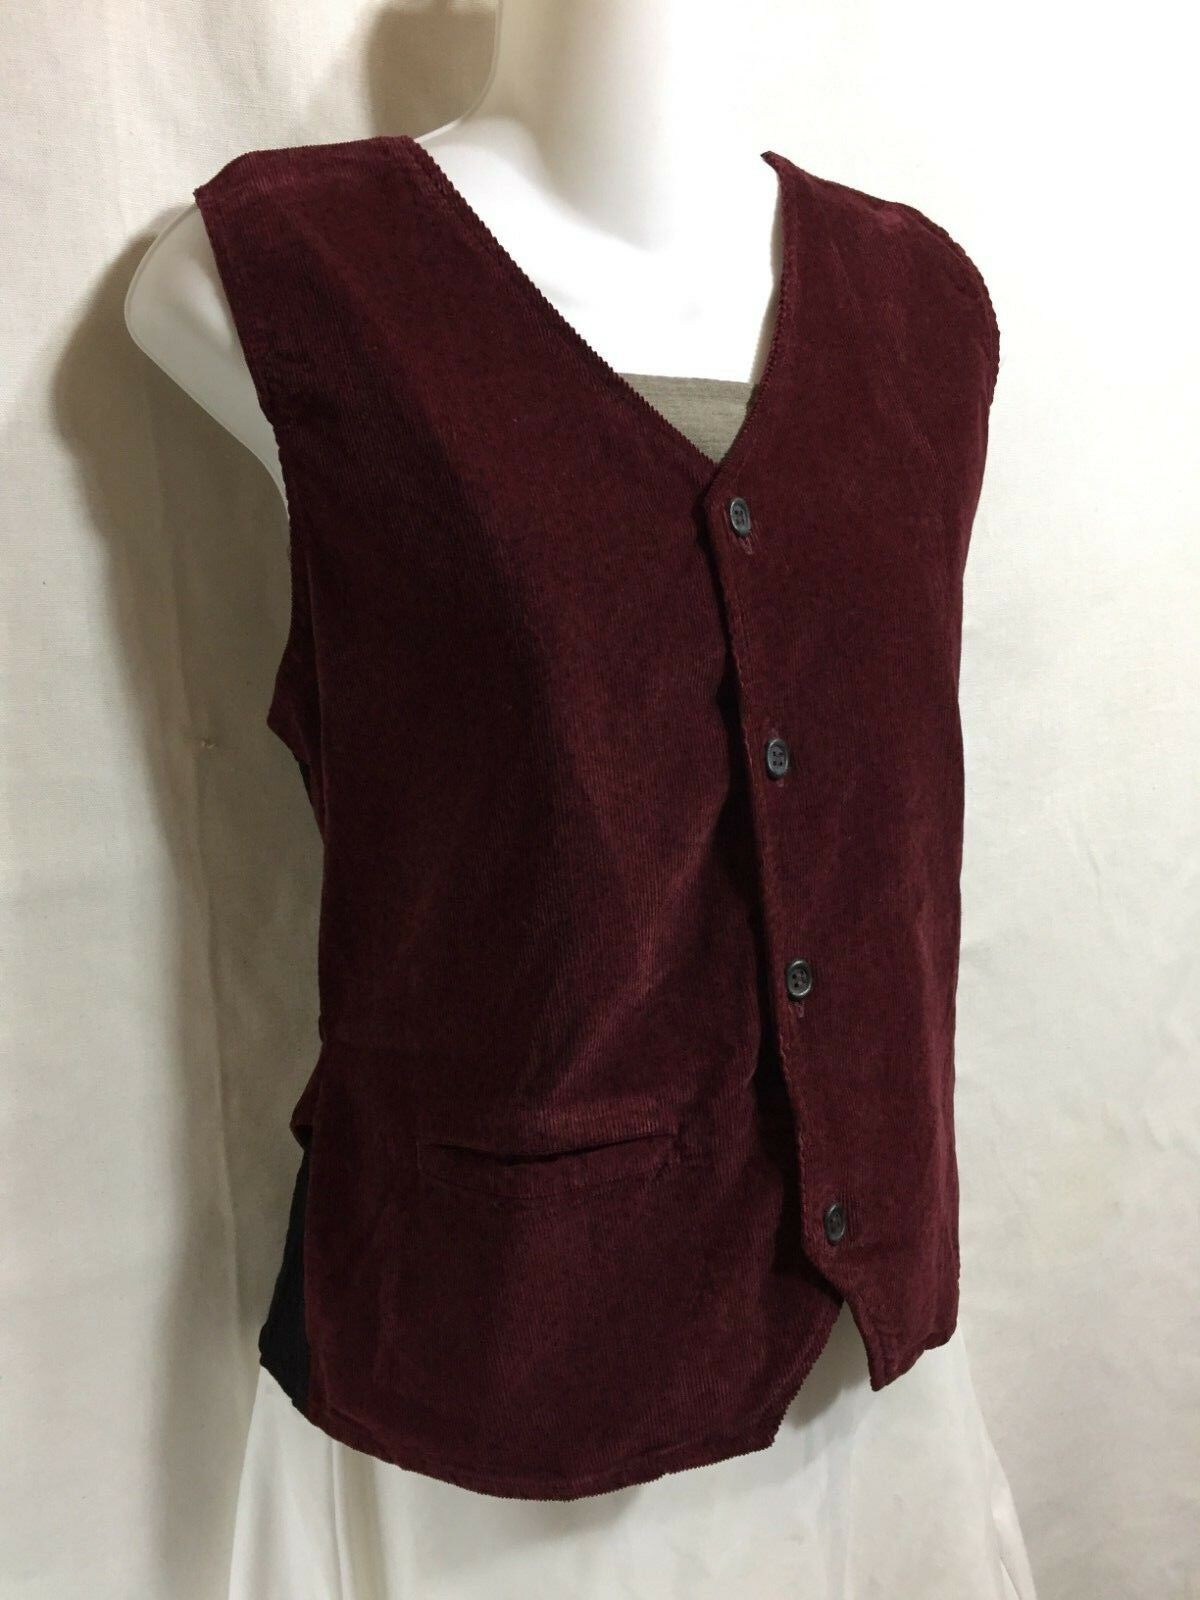 FLAX by Jeanne Engelhart Burgundy Red Cotton Corduroy Fitted Belt Button Vest M